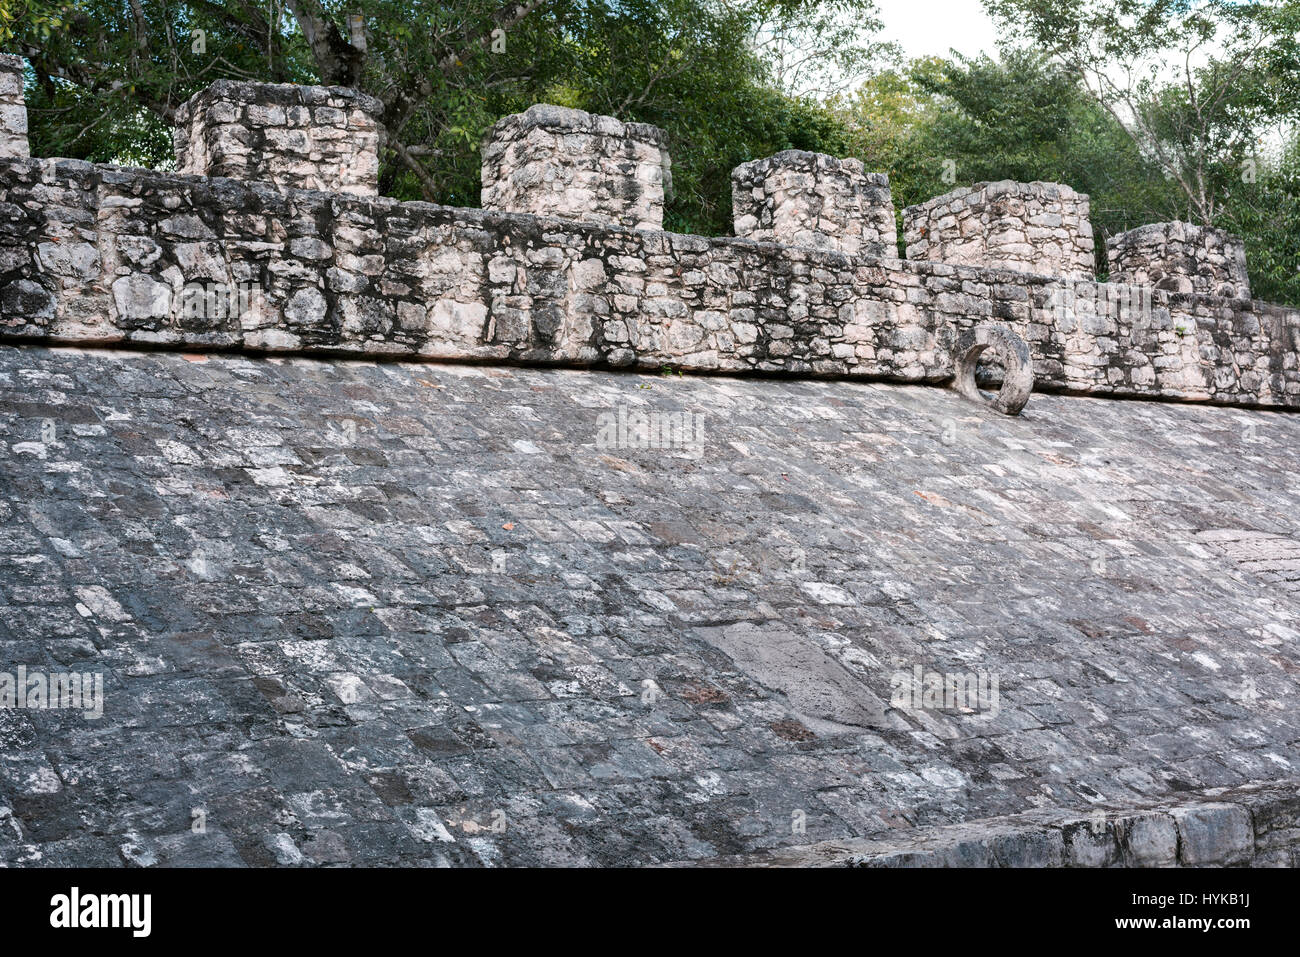 the stone ring on sloping side of the Ball Court at the Mayan Coba Ruins, Mexico - Stock Image